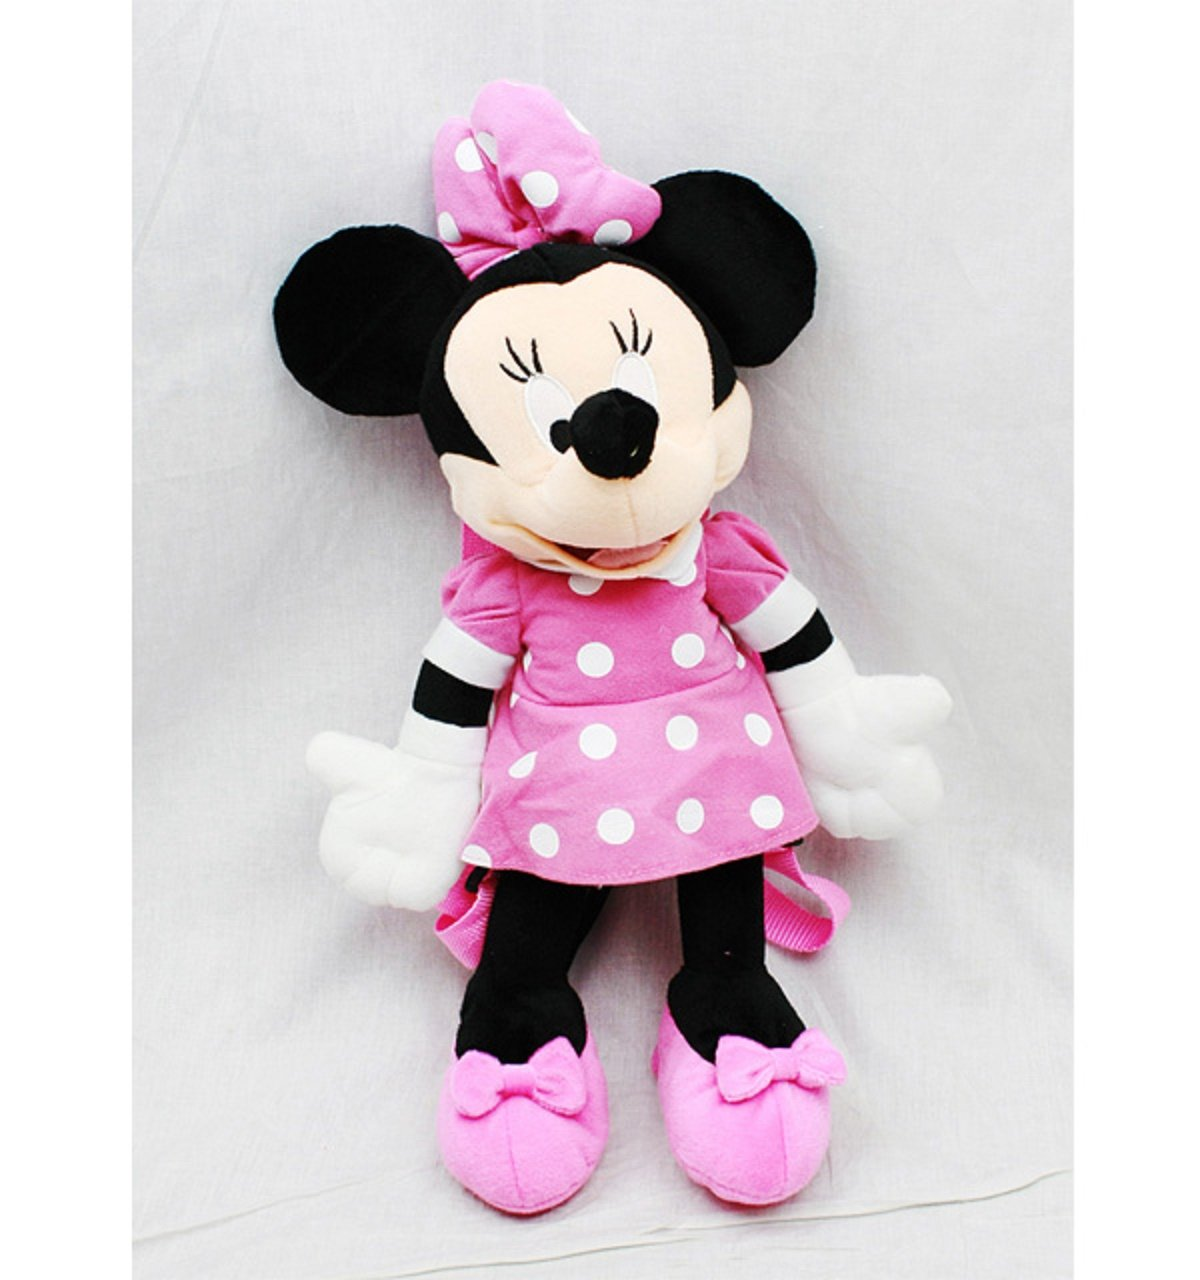 Minnie Mouse Plush Backpack  3D Backpack  16 Inch Mininie by Disney